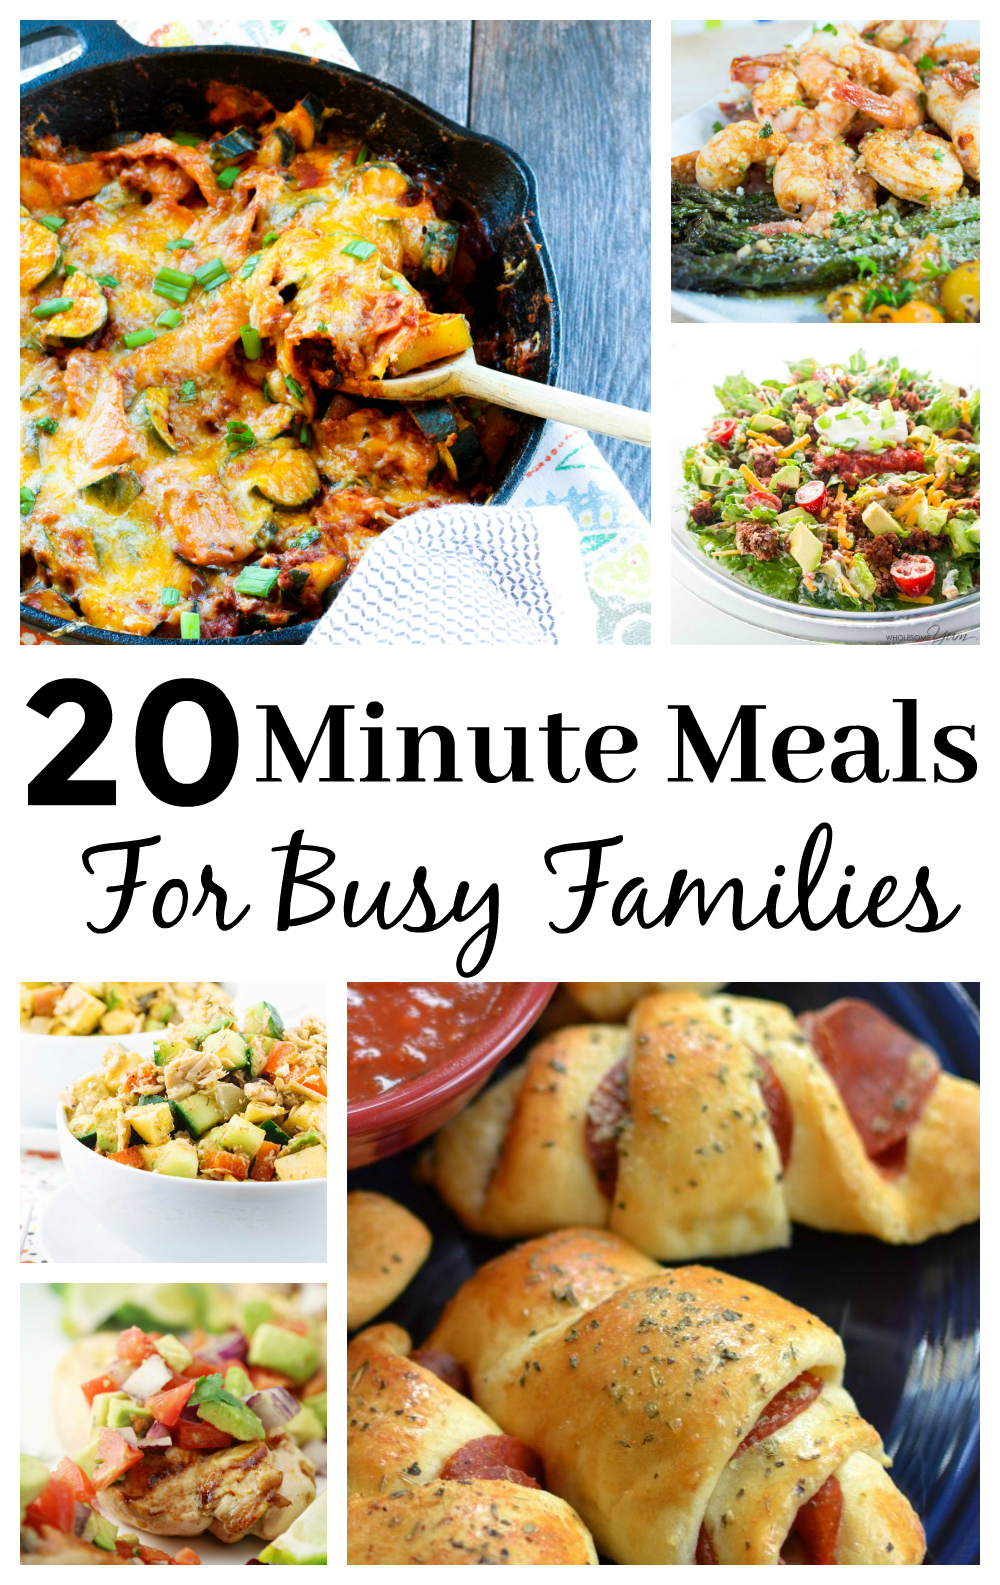 20 Minute Meals For Busy Families